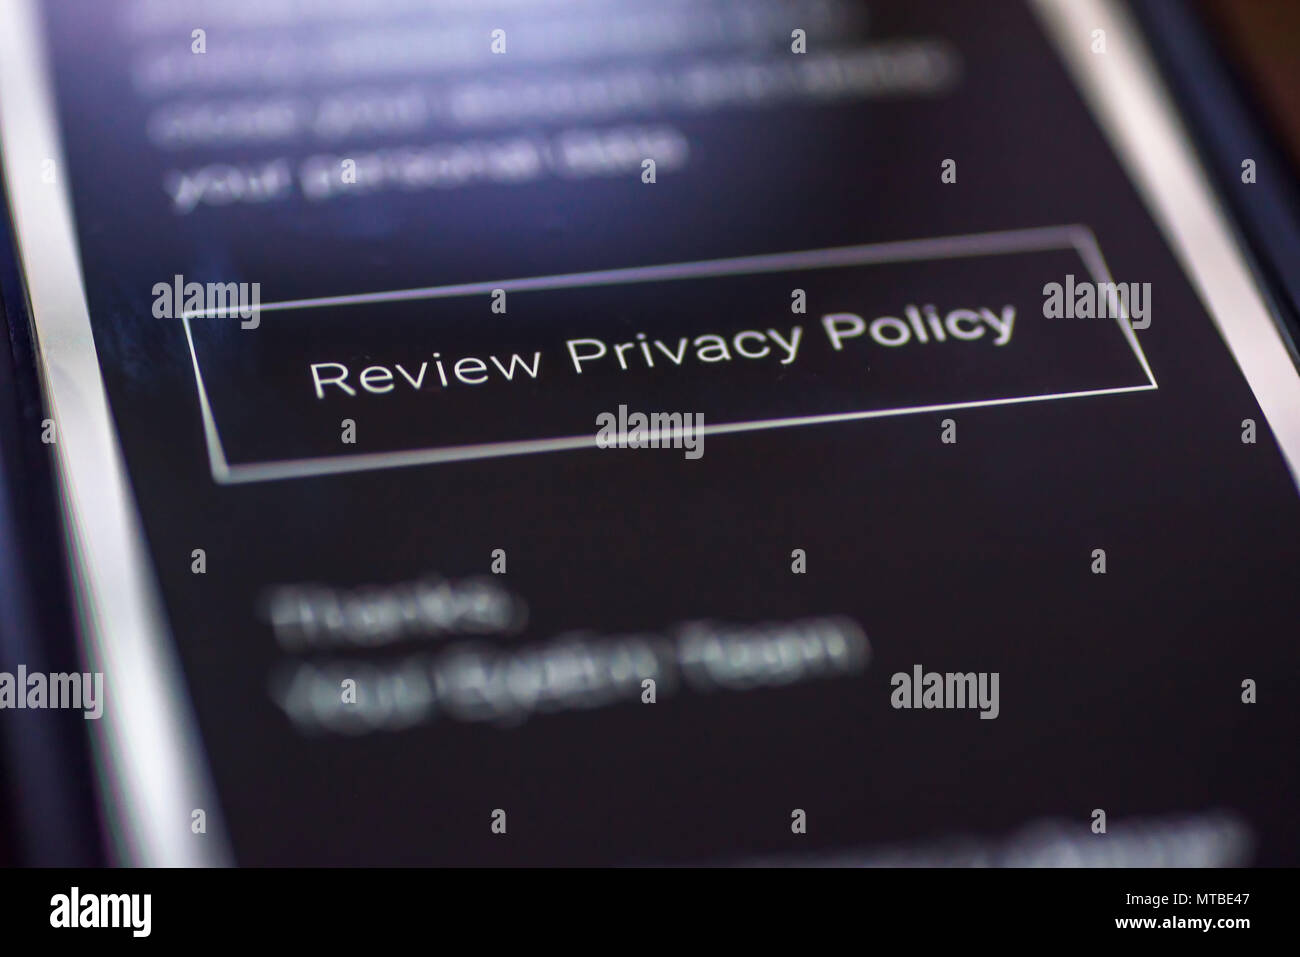 General Data Protection Regulation - GDPR - closeup smartphone message with button Review Privacy Policy. - Stock Image